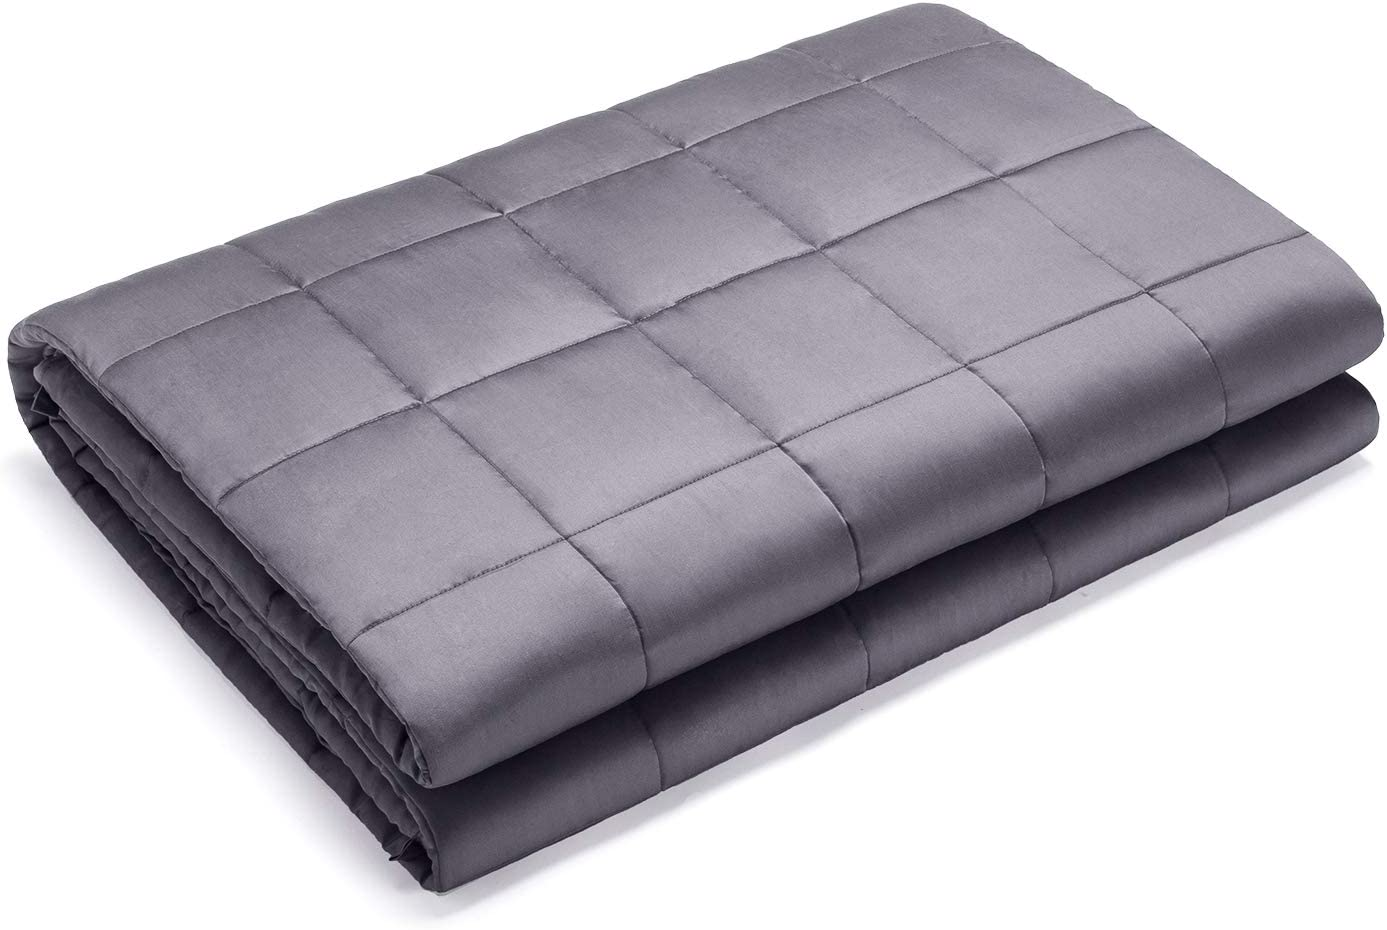 UBBCARE Dreamcountry Bamboo Weighted Blanket Adult 25 lbs 80''x87'' for Couple King Size Cooling Touch Heavy Weighted Blanket with Premium Glass Beads Dark Grey